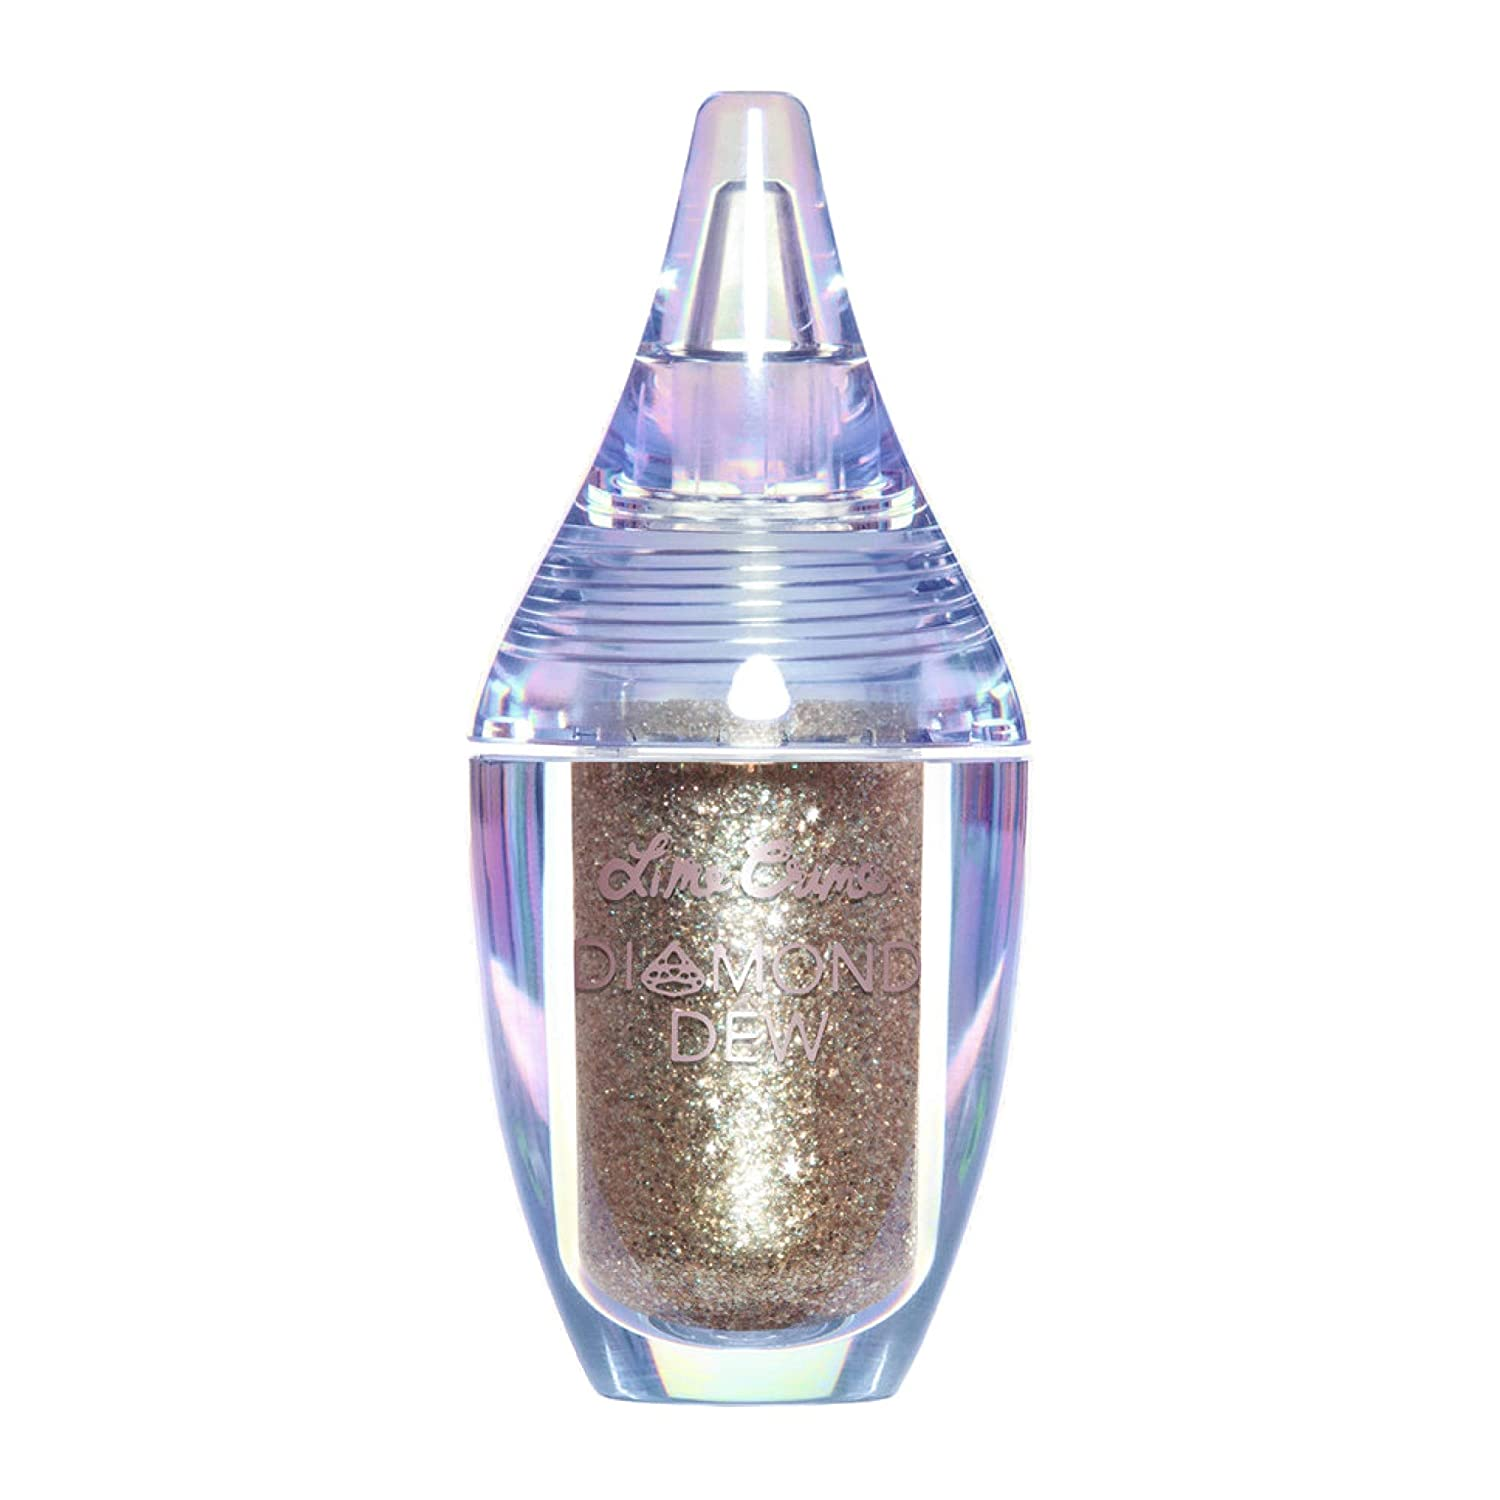 Lime Crime Diamond Dew Glitter Eyeshadow, Starlight - Iridescent Lid Topper Gliver- Gold/Silver - Reflective Sparkle Shadow for Lids, Cheeks & Body - Won't Smudge or Crease - Vegan - 0.14 fl oz